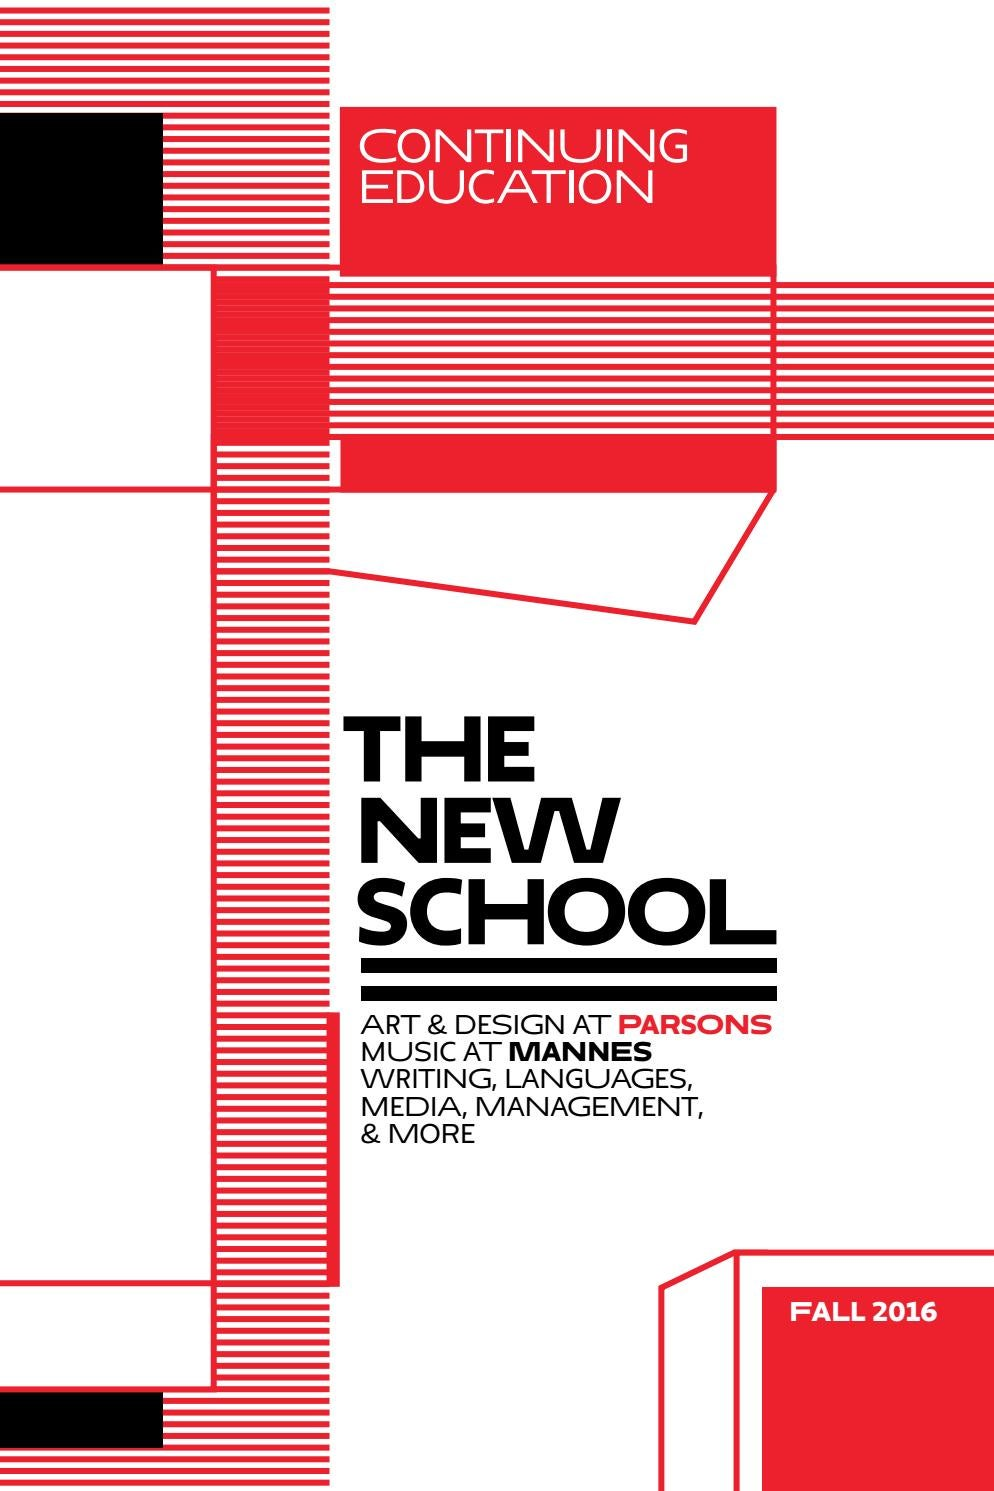 The New School | Continuing Education Catalog | Fall 2016 by The New ...